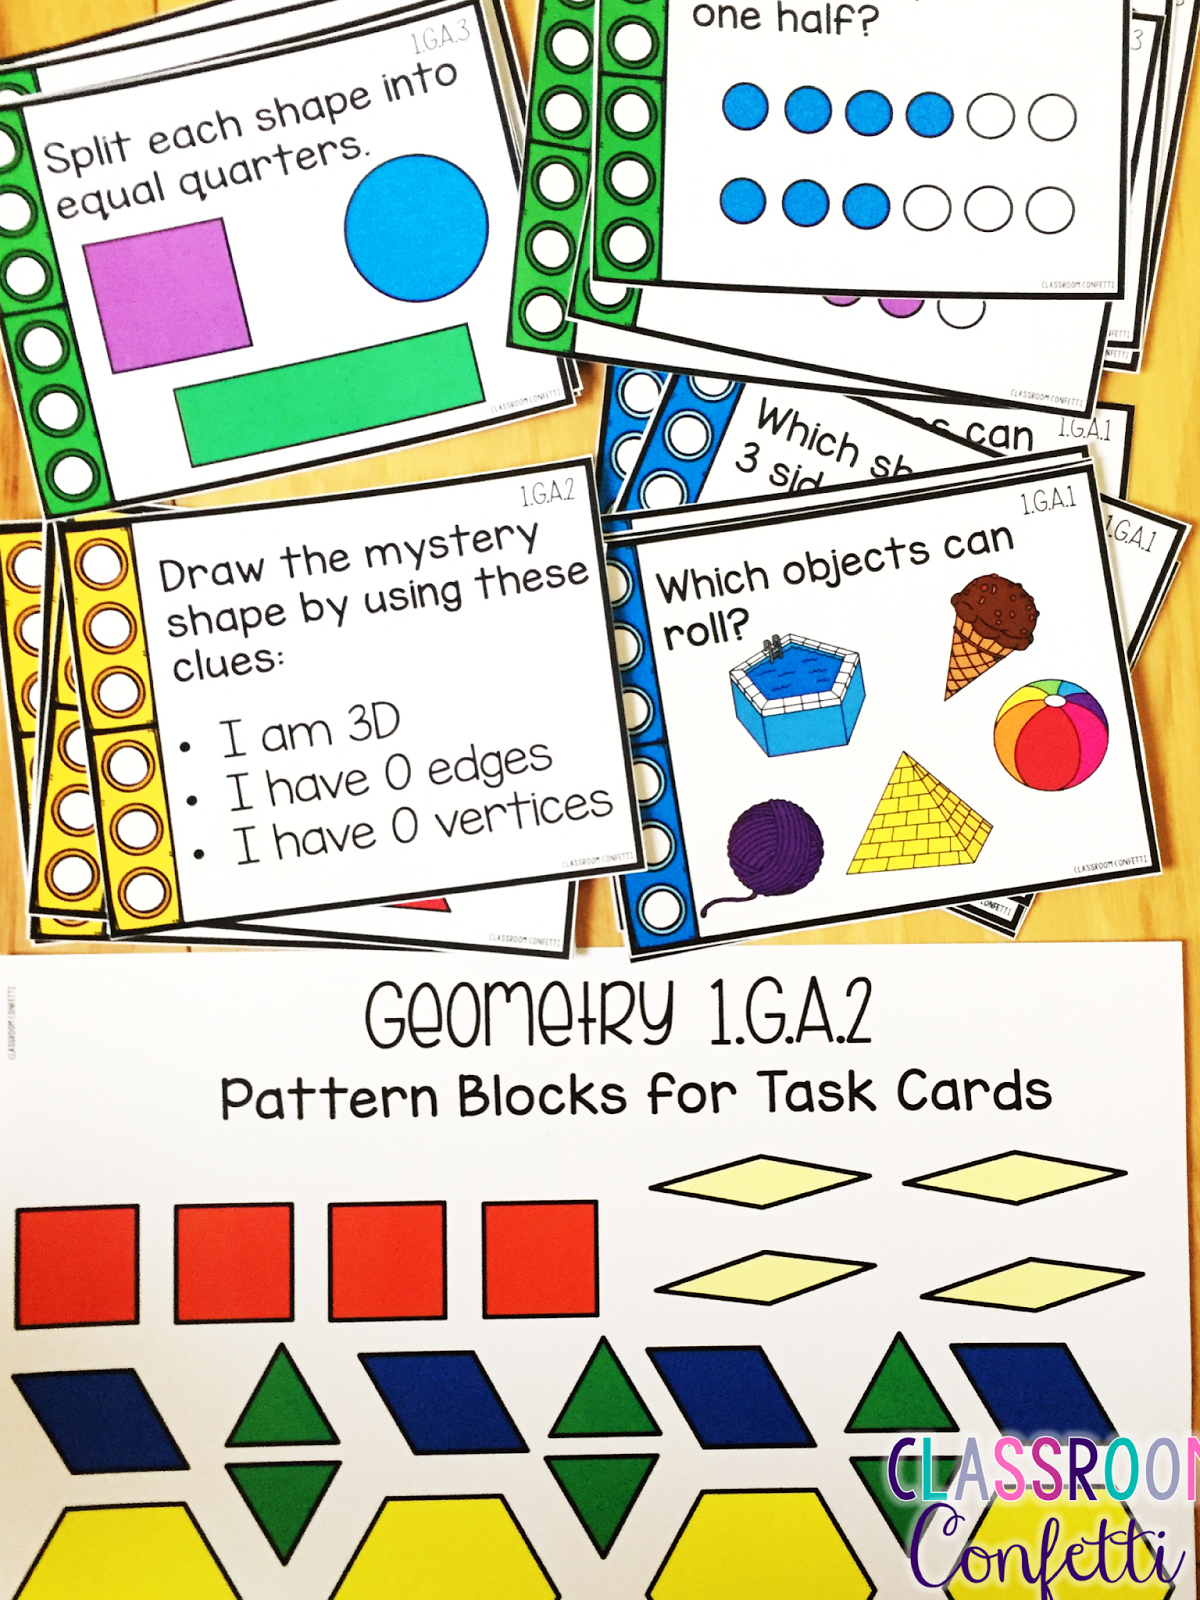 You can find these First Grade Geometry Task Cards here.